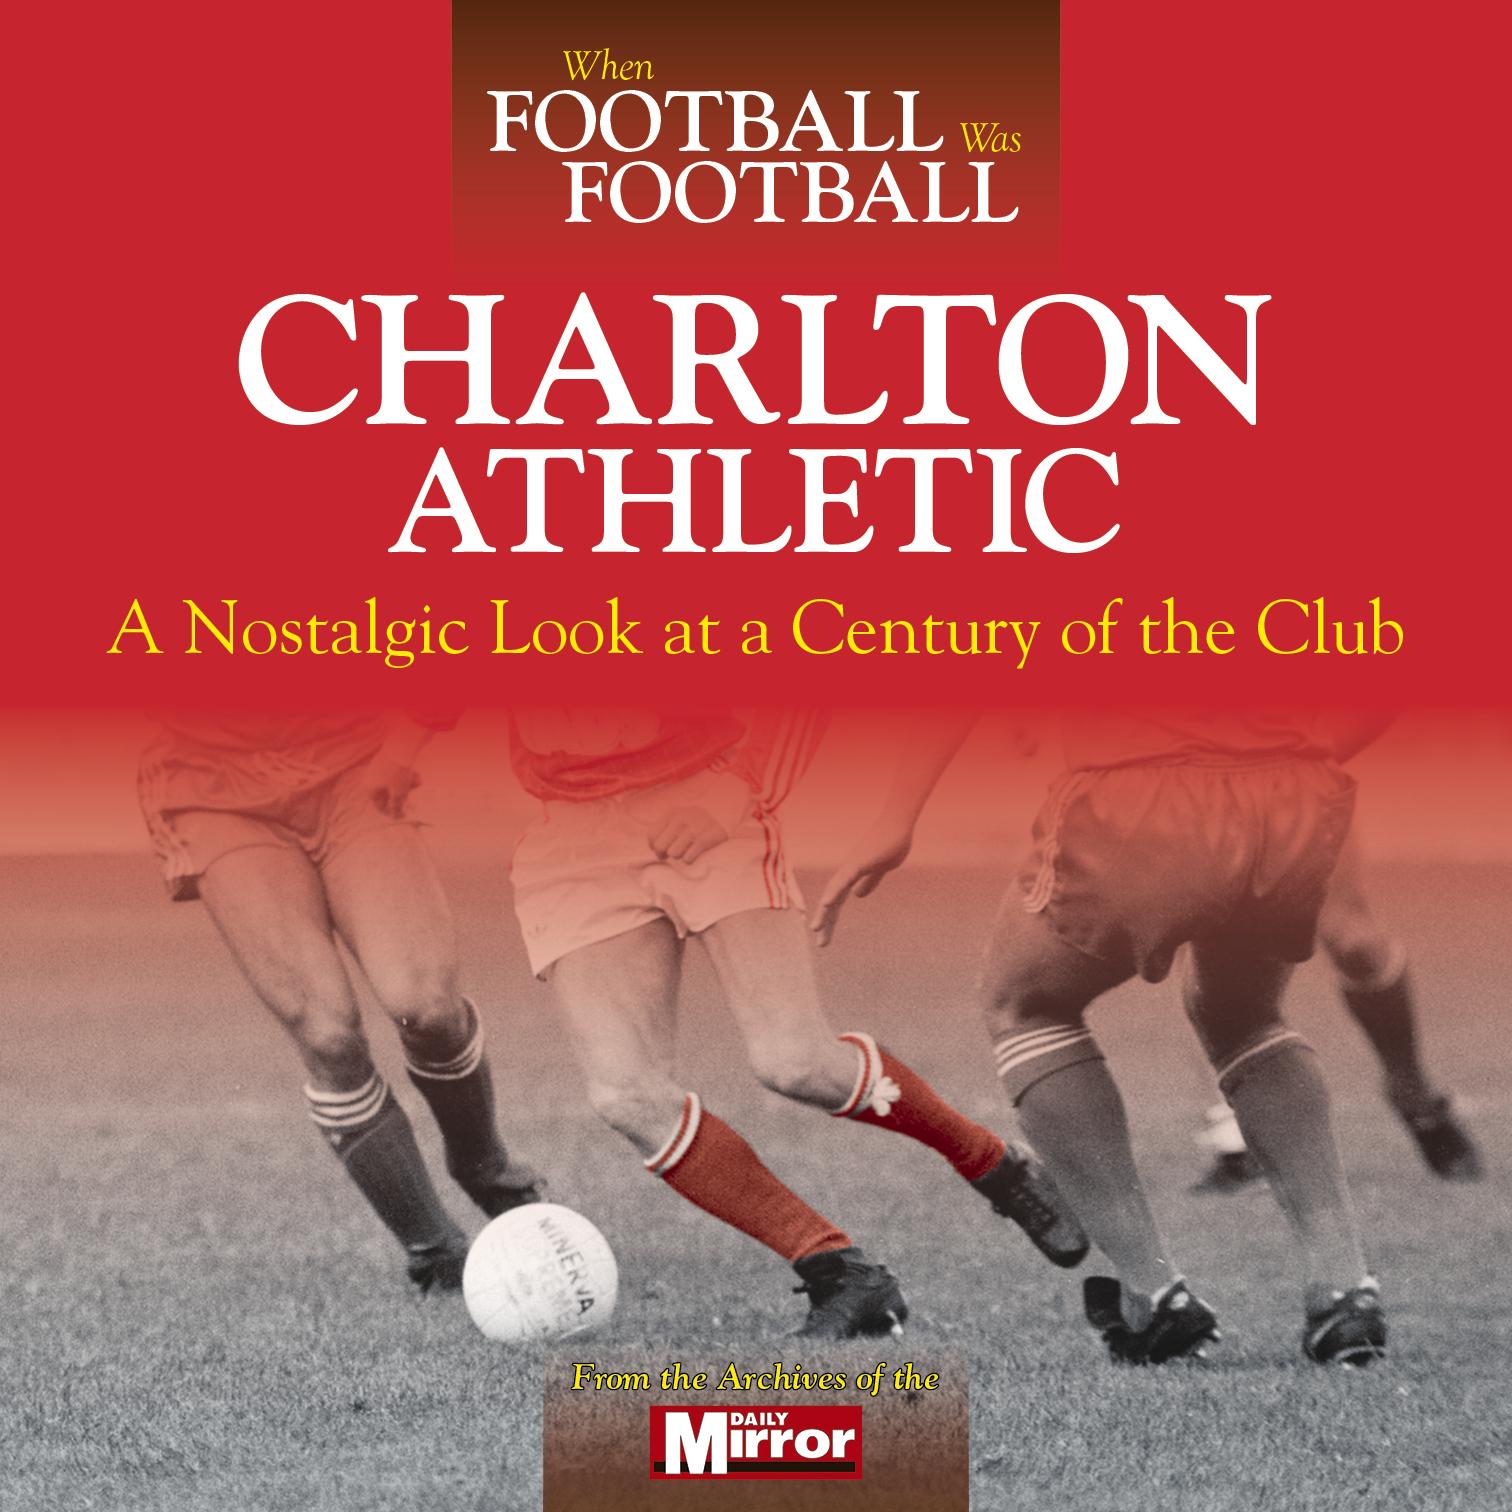 When Football was Football: Charlton Athletic - a nostalgic look at a century of the club